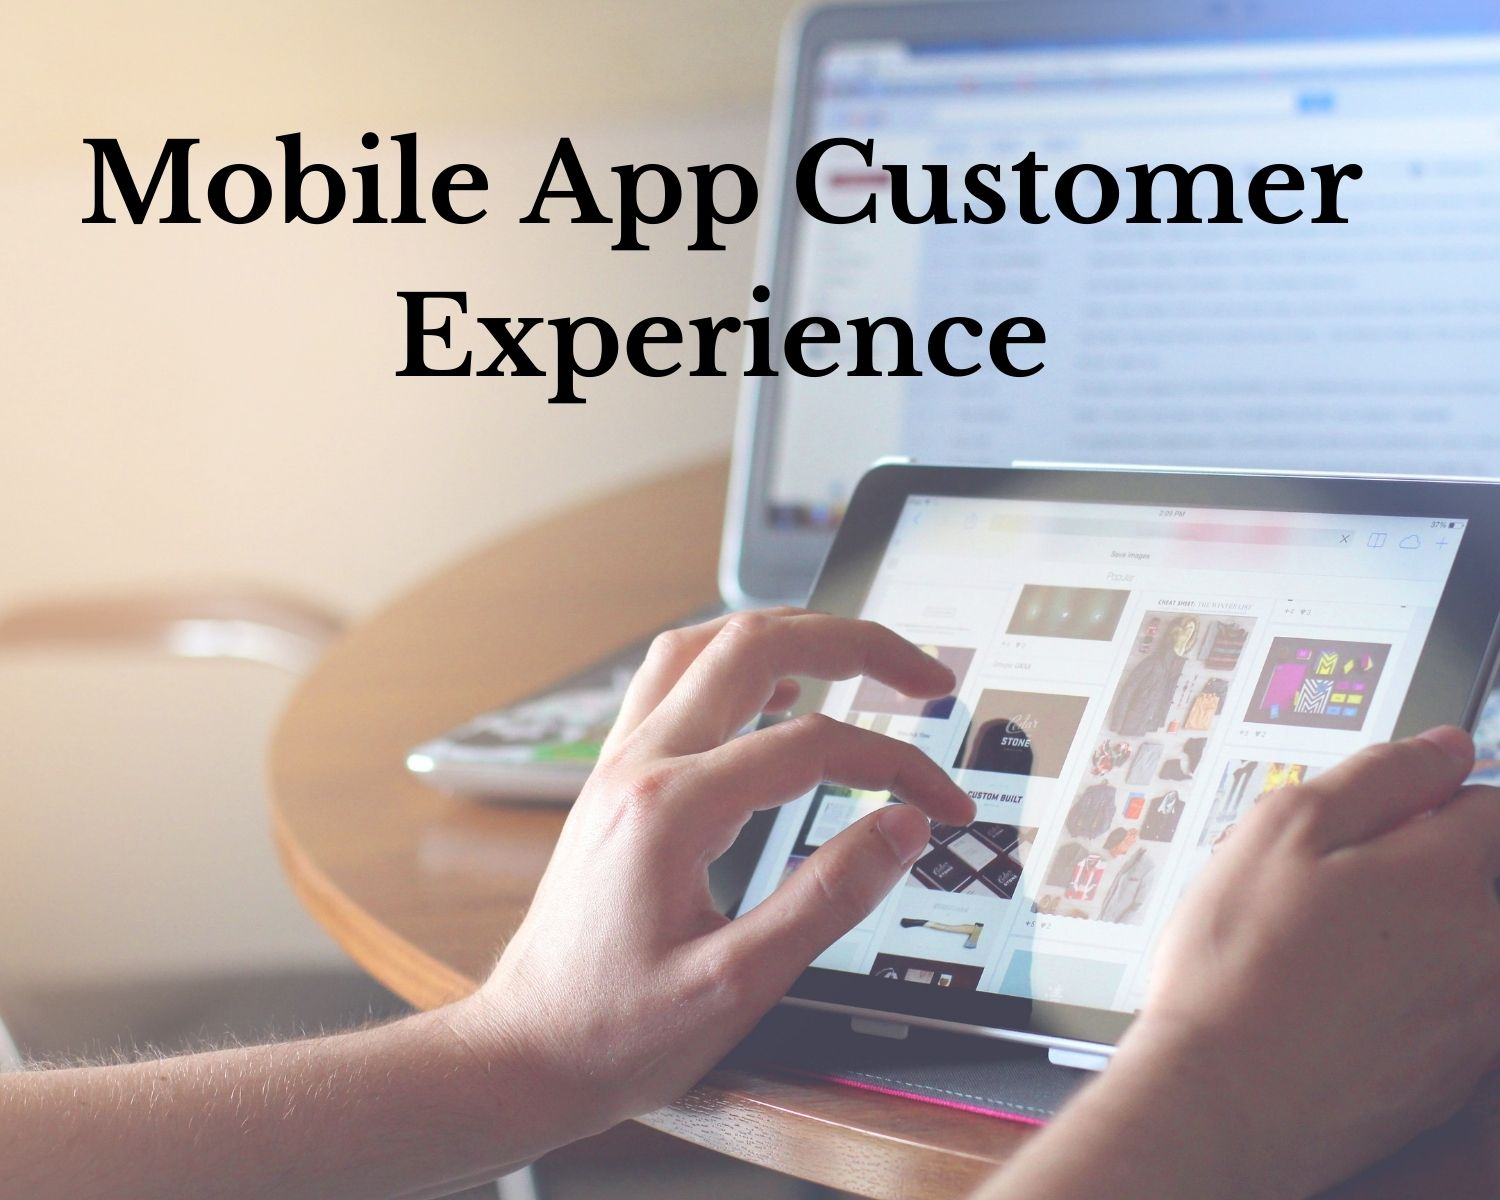 Mobile App Customer Experience